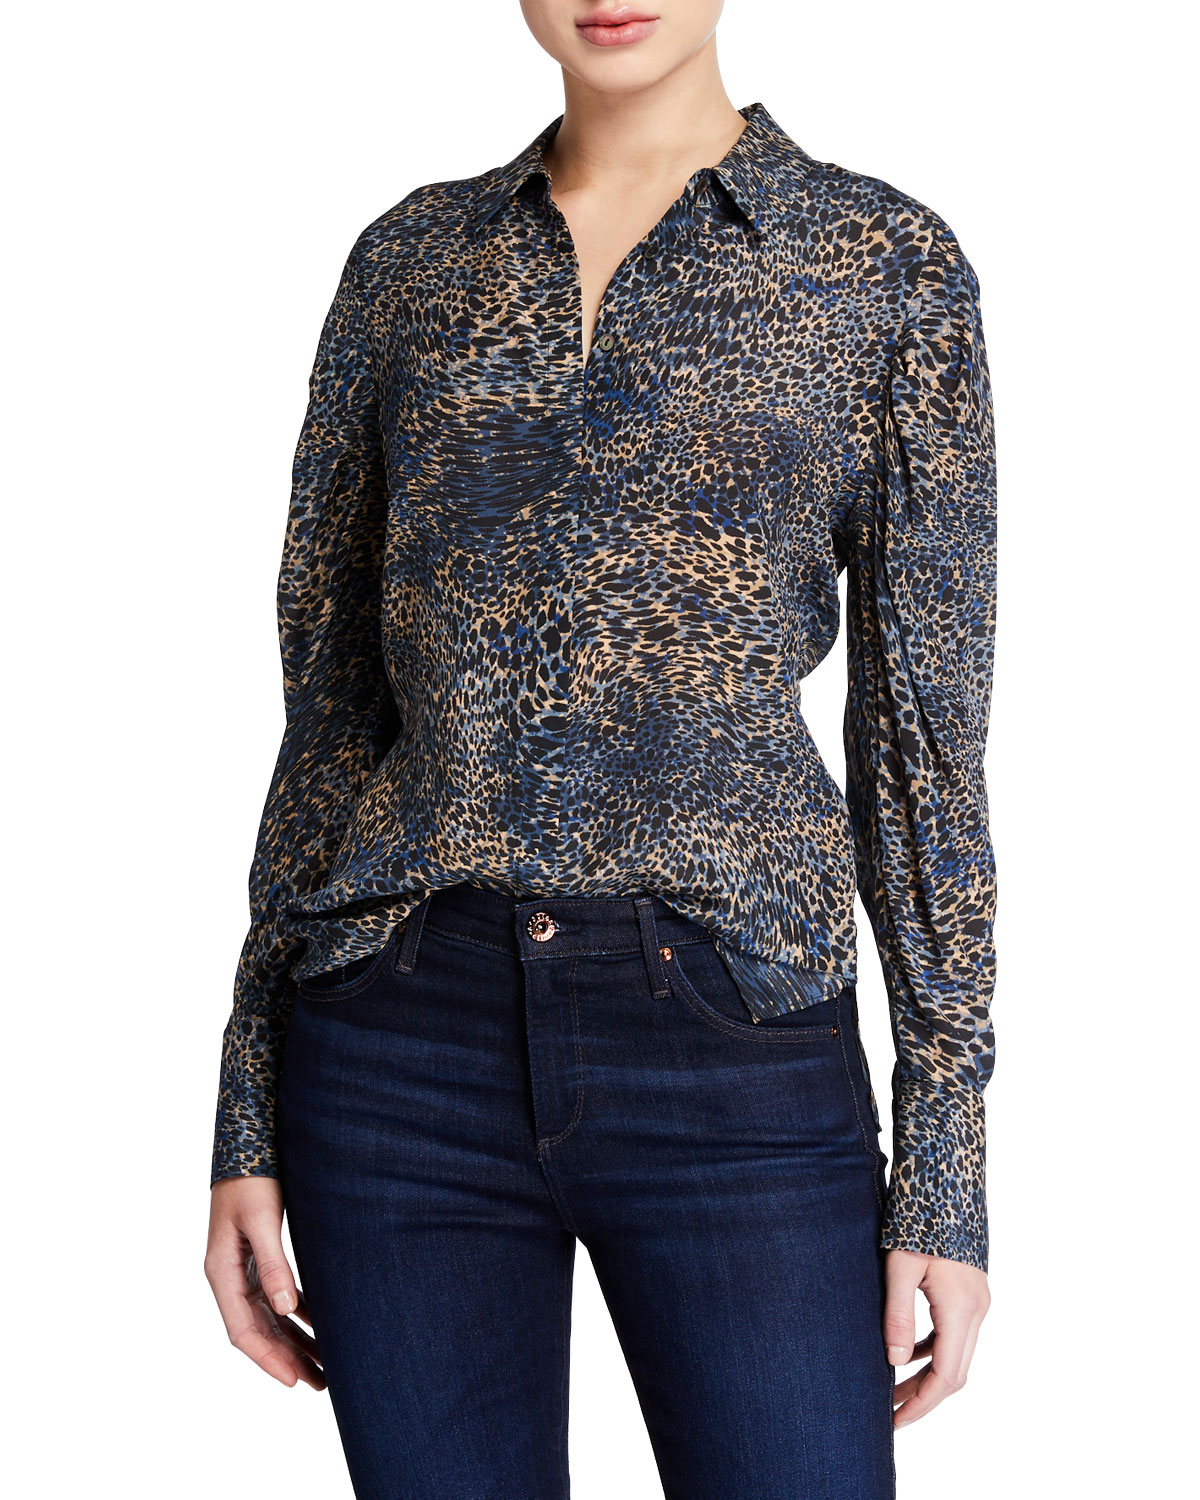 Kobi Halperin Tops ORI ANIMAL-PRINT BUTTON-DOWN LONG-SLEEVE SILK BLOUSE